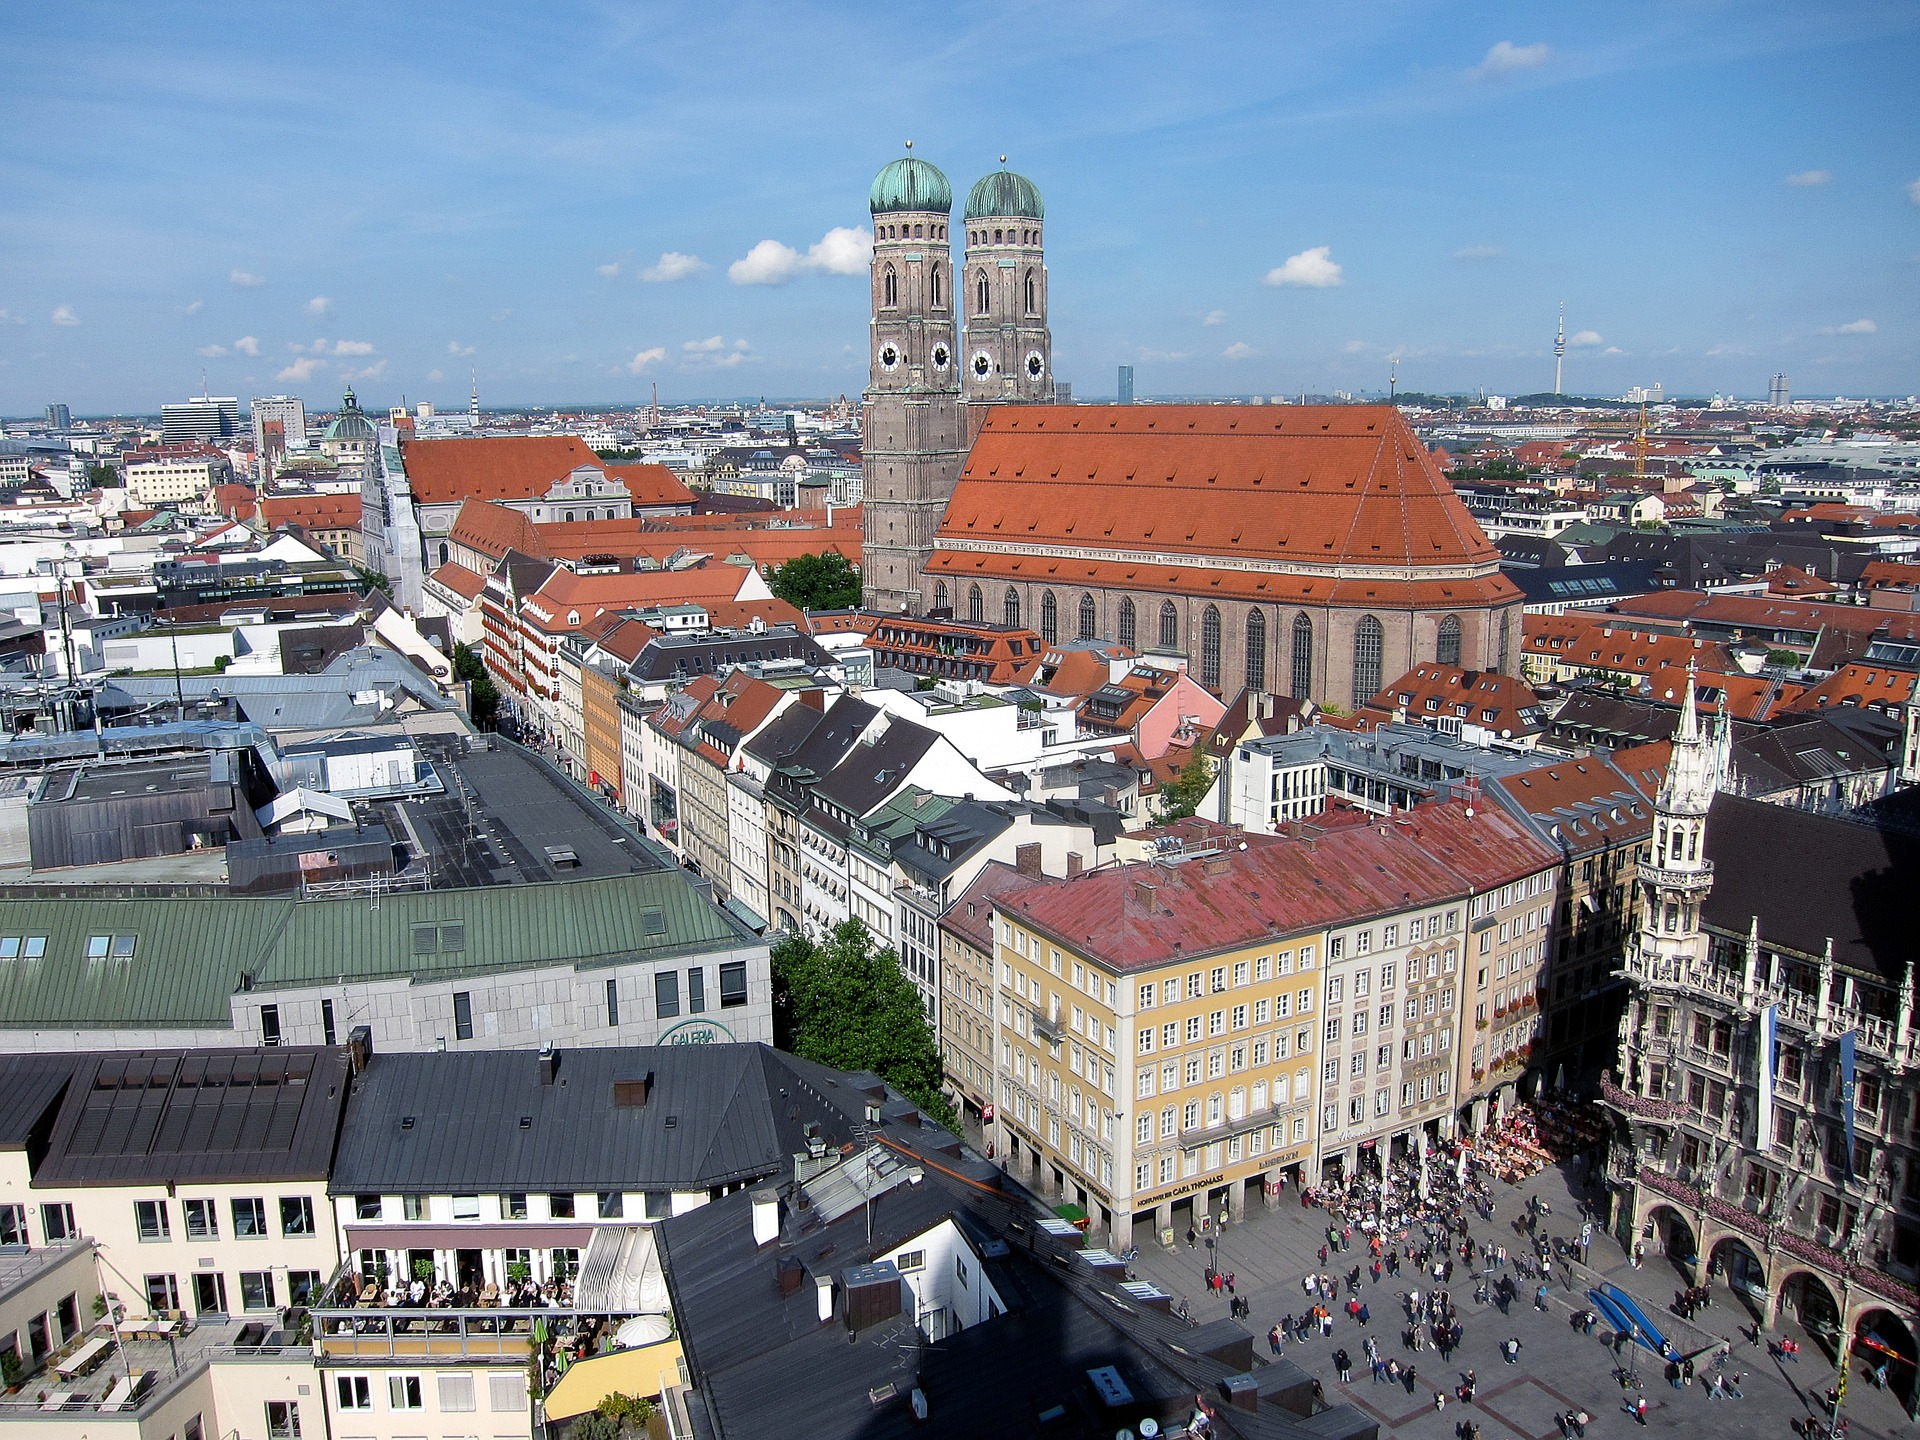 Frauenkirche and Marienplatz, Munich, Germany